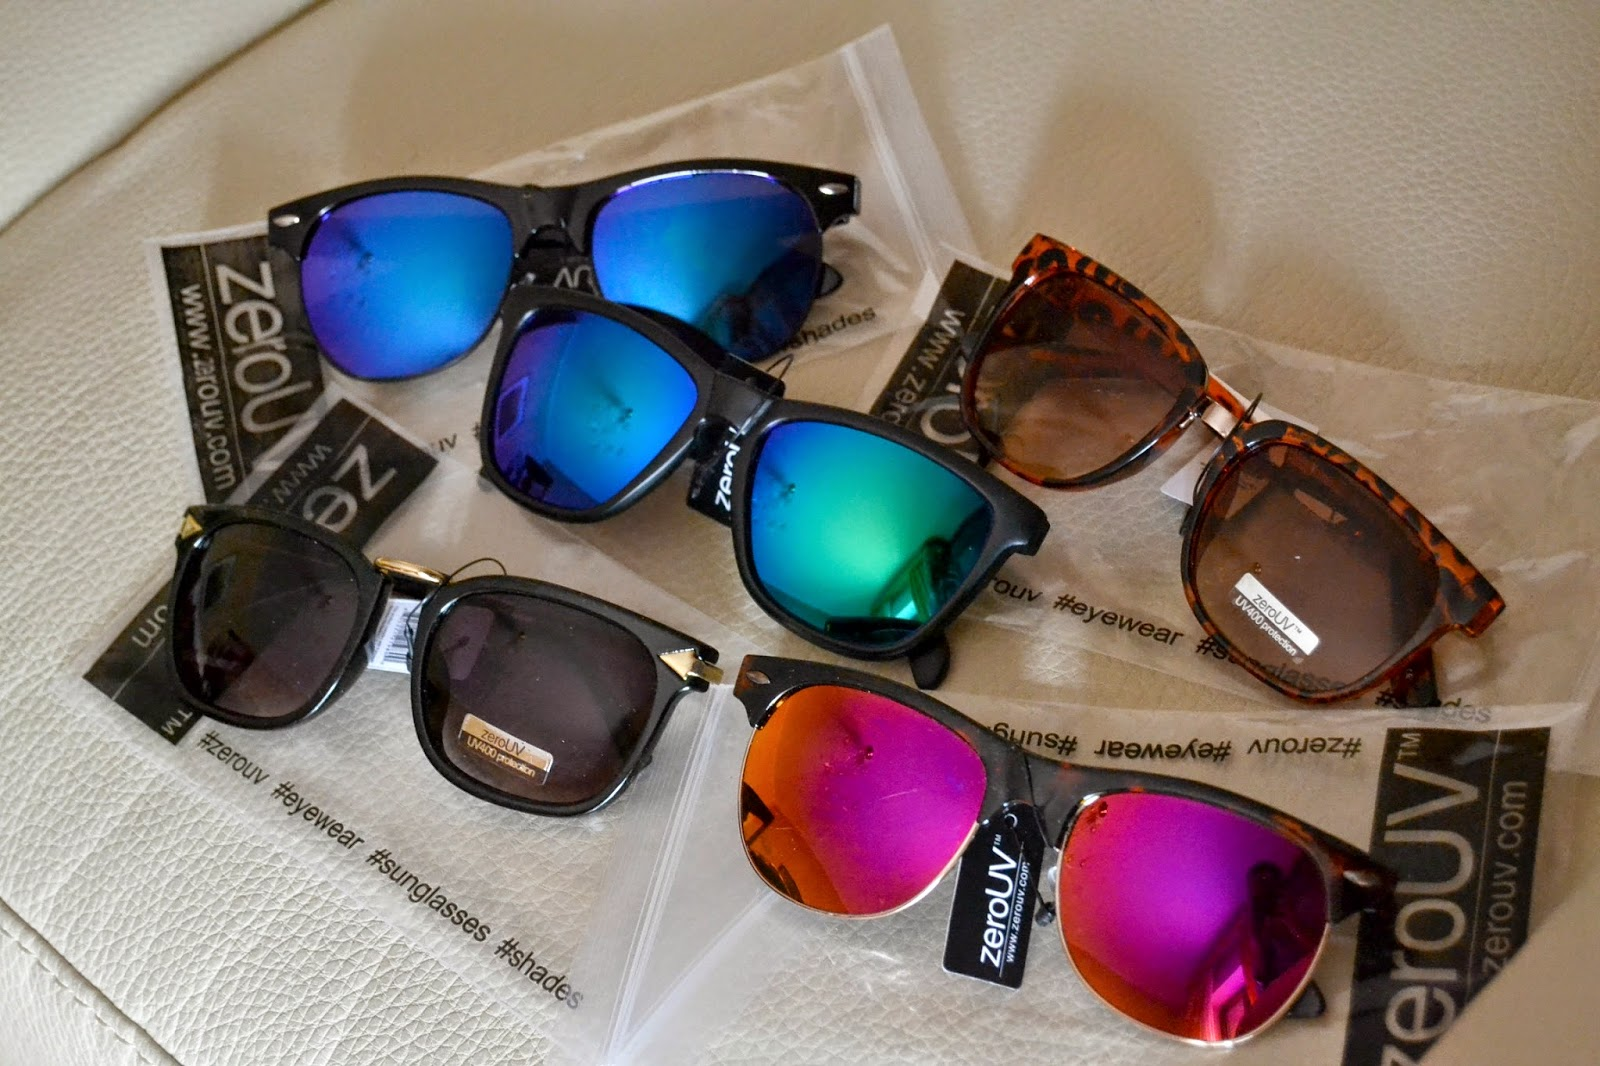 http://www.syriouslyinfashion.com/2014/05/zerouv-spring-sunglasses-collection.html